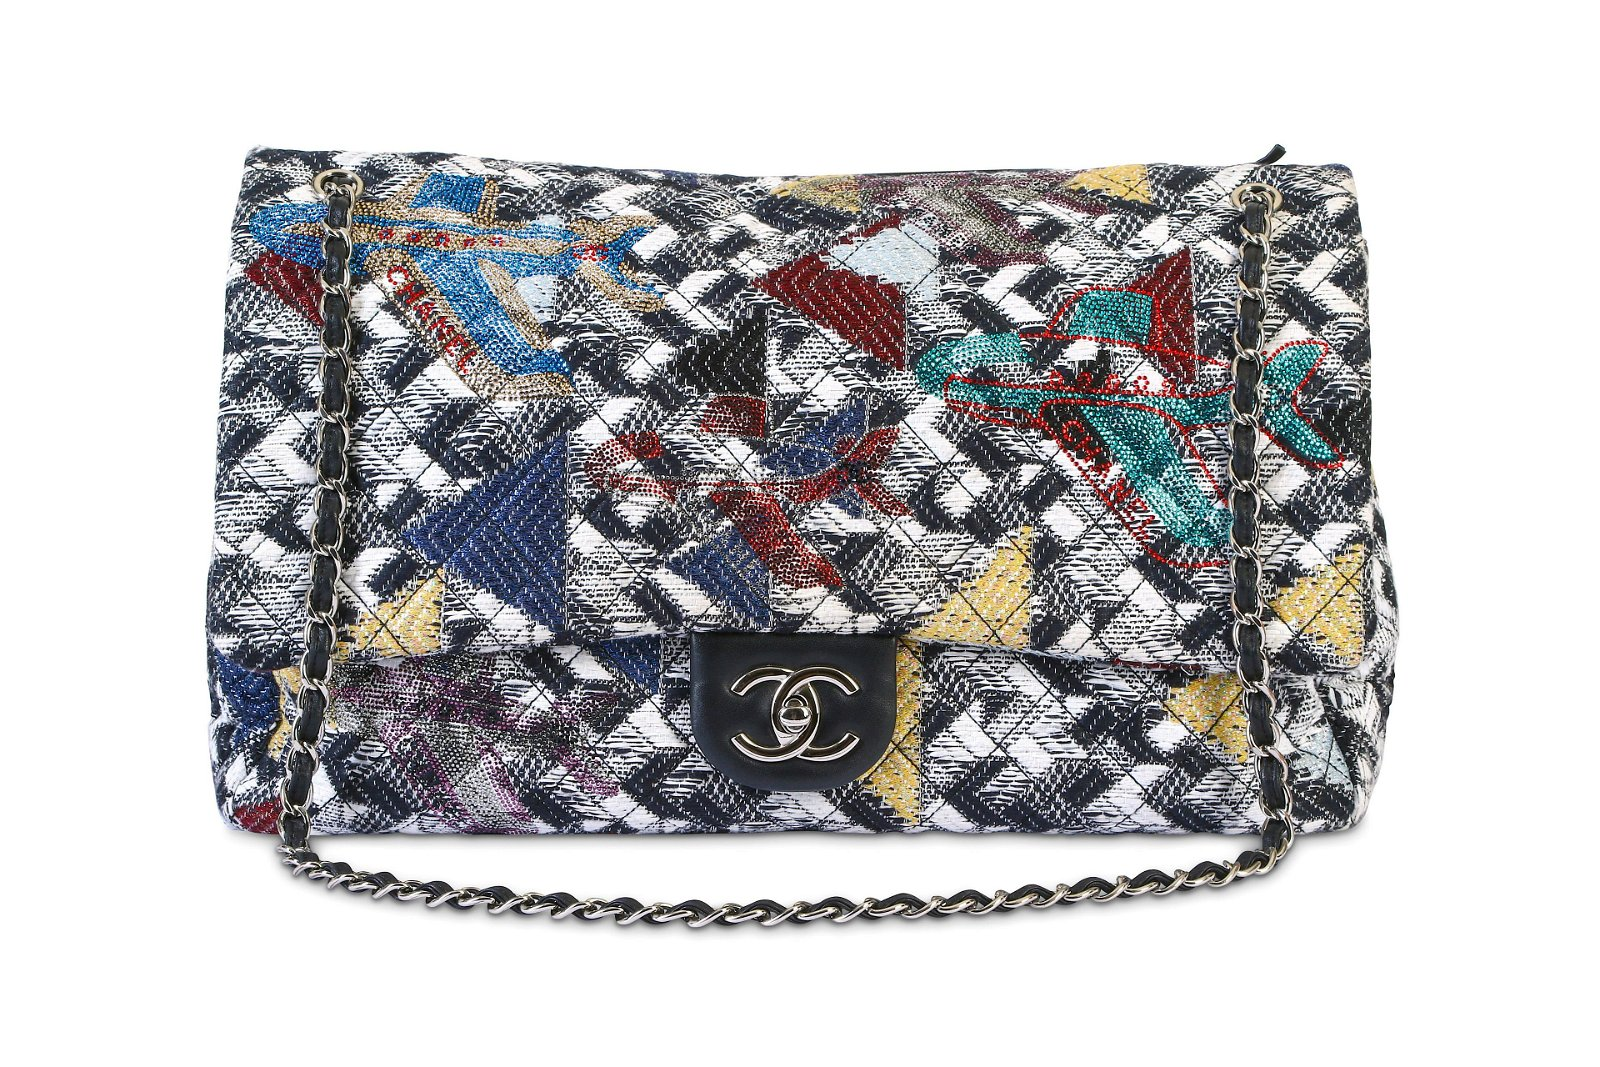 Chanel Airlines Tweed Strass XXL Flap Bag